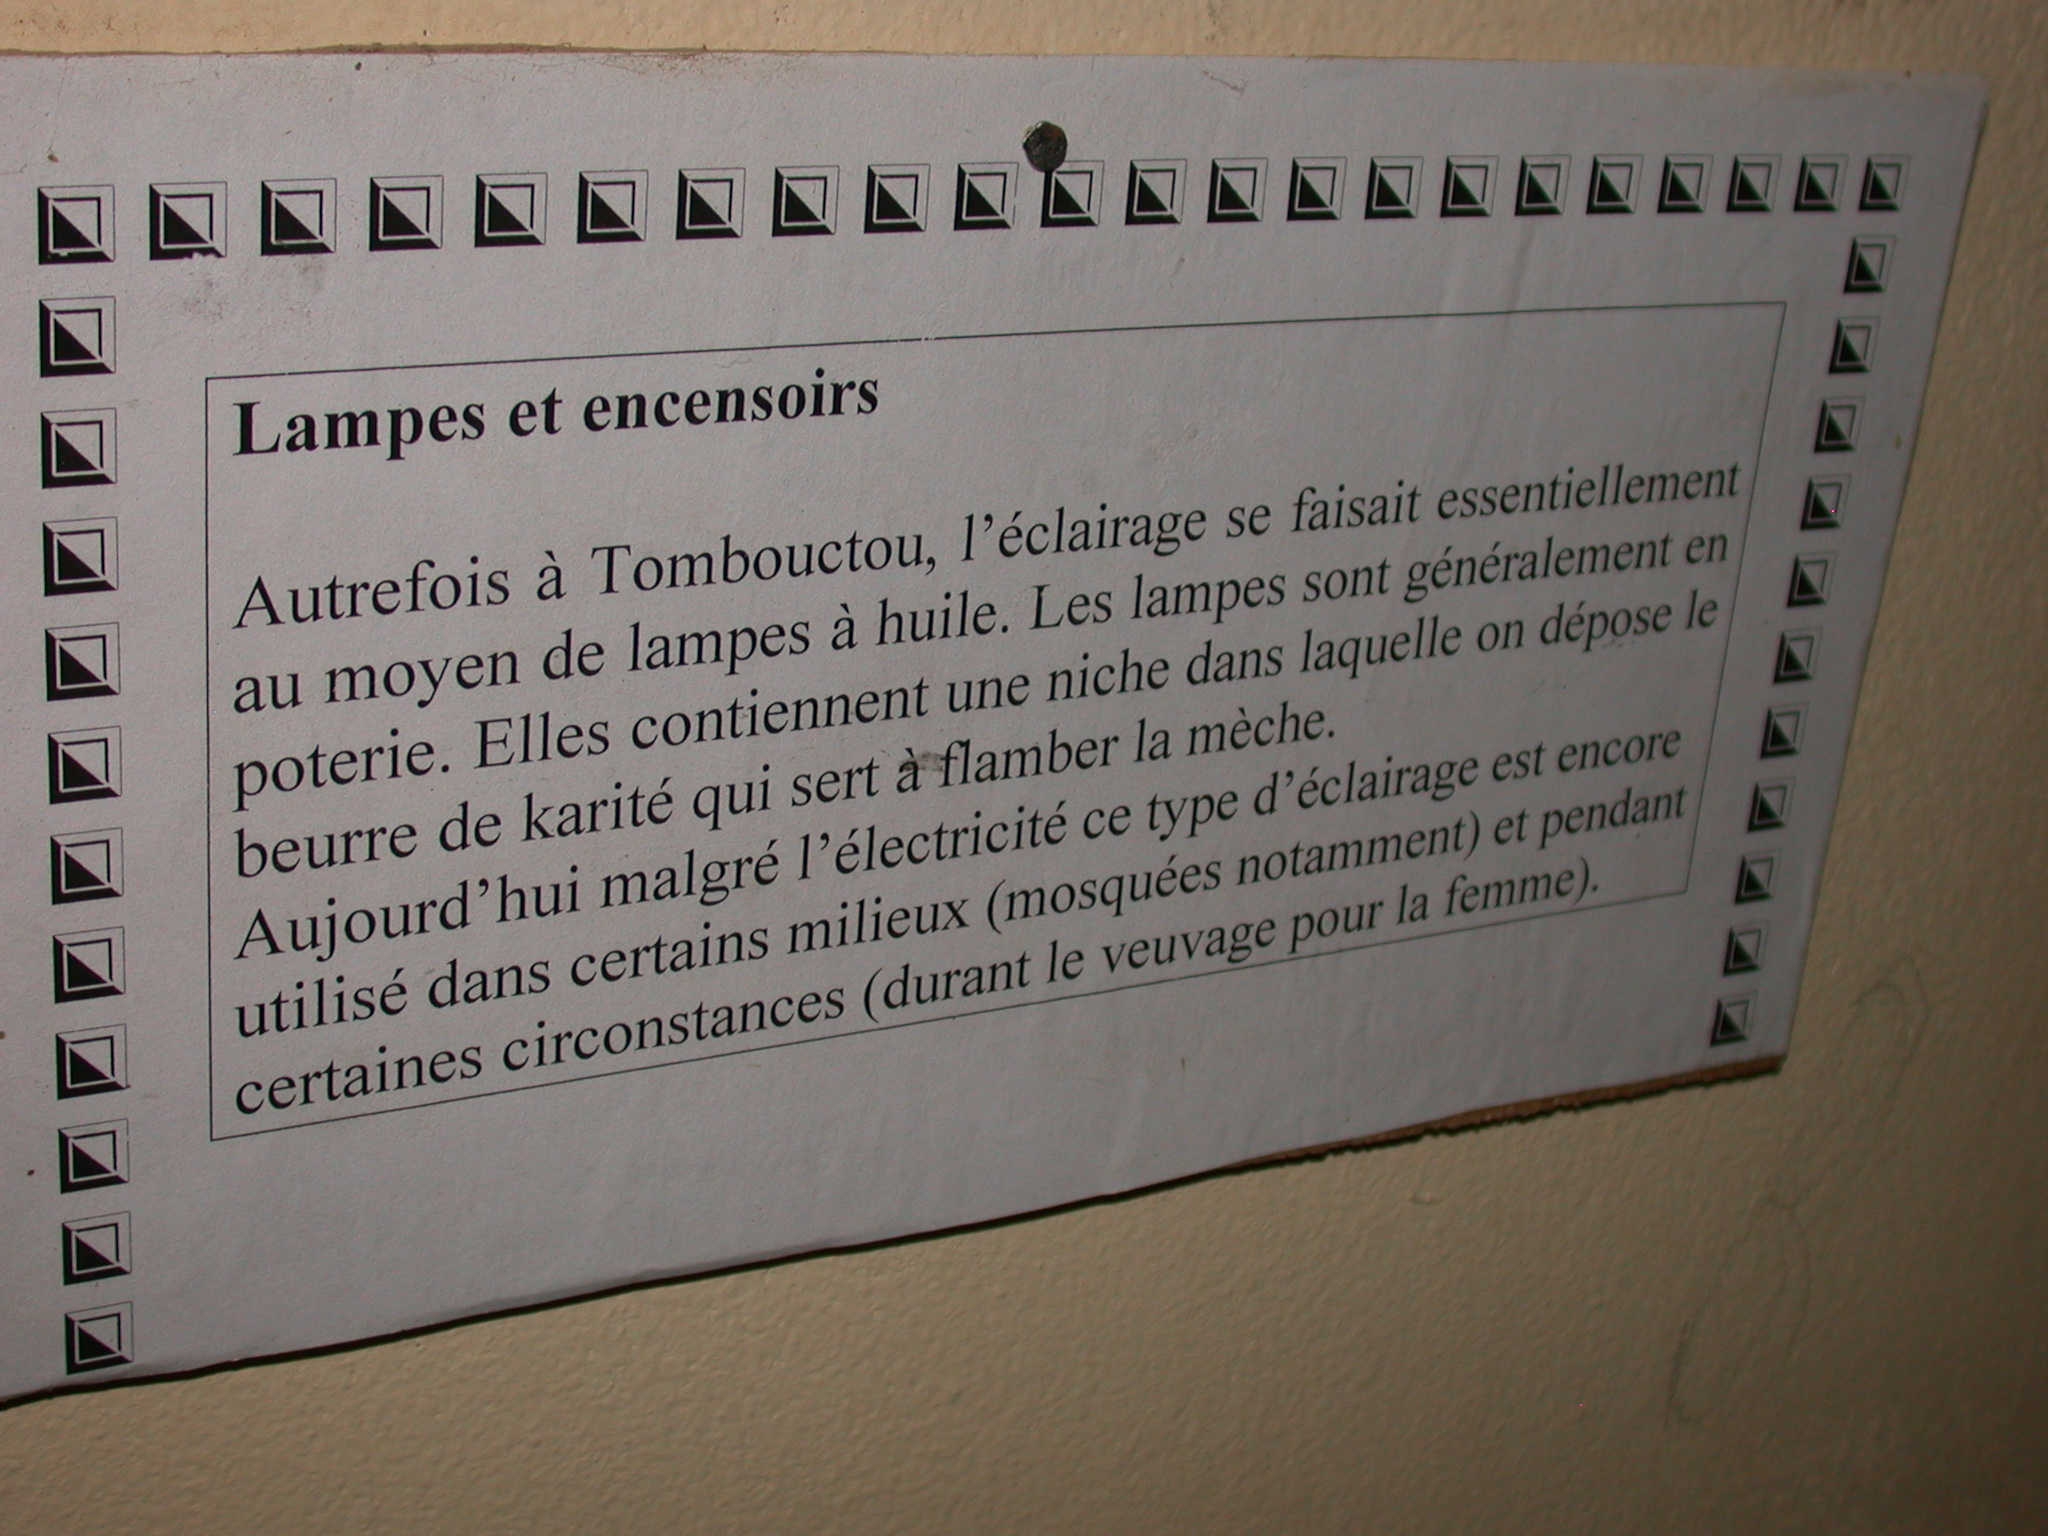 Description of Lamps and Incense Burners, Timbuktu Ethnological Museum, Timbuktu, Mali